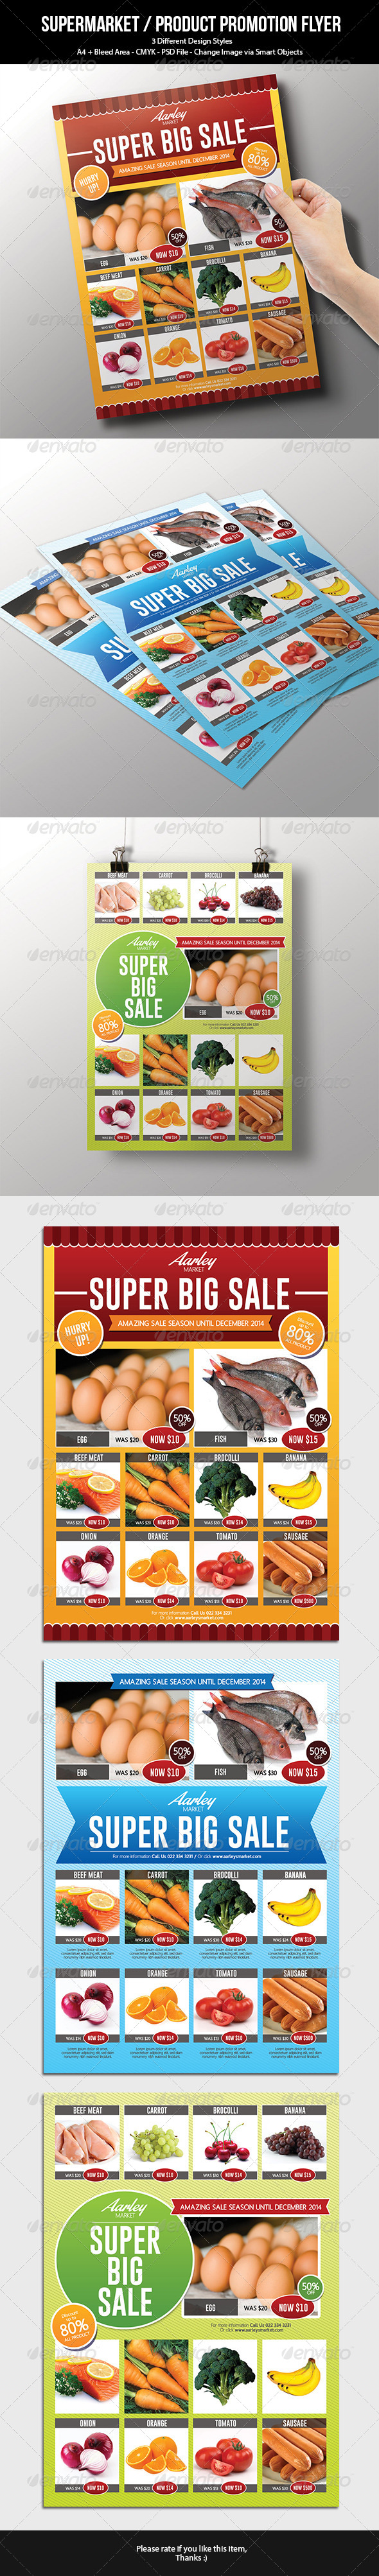 Supermarket / Product Promotion Flyer - Commerce Flyers